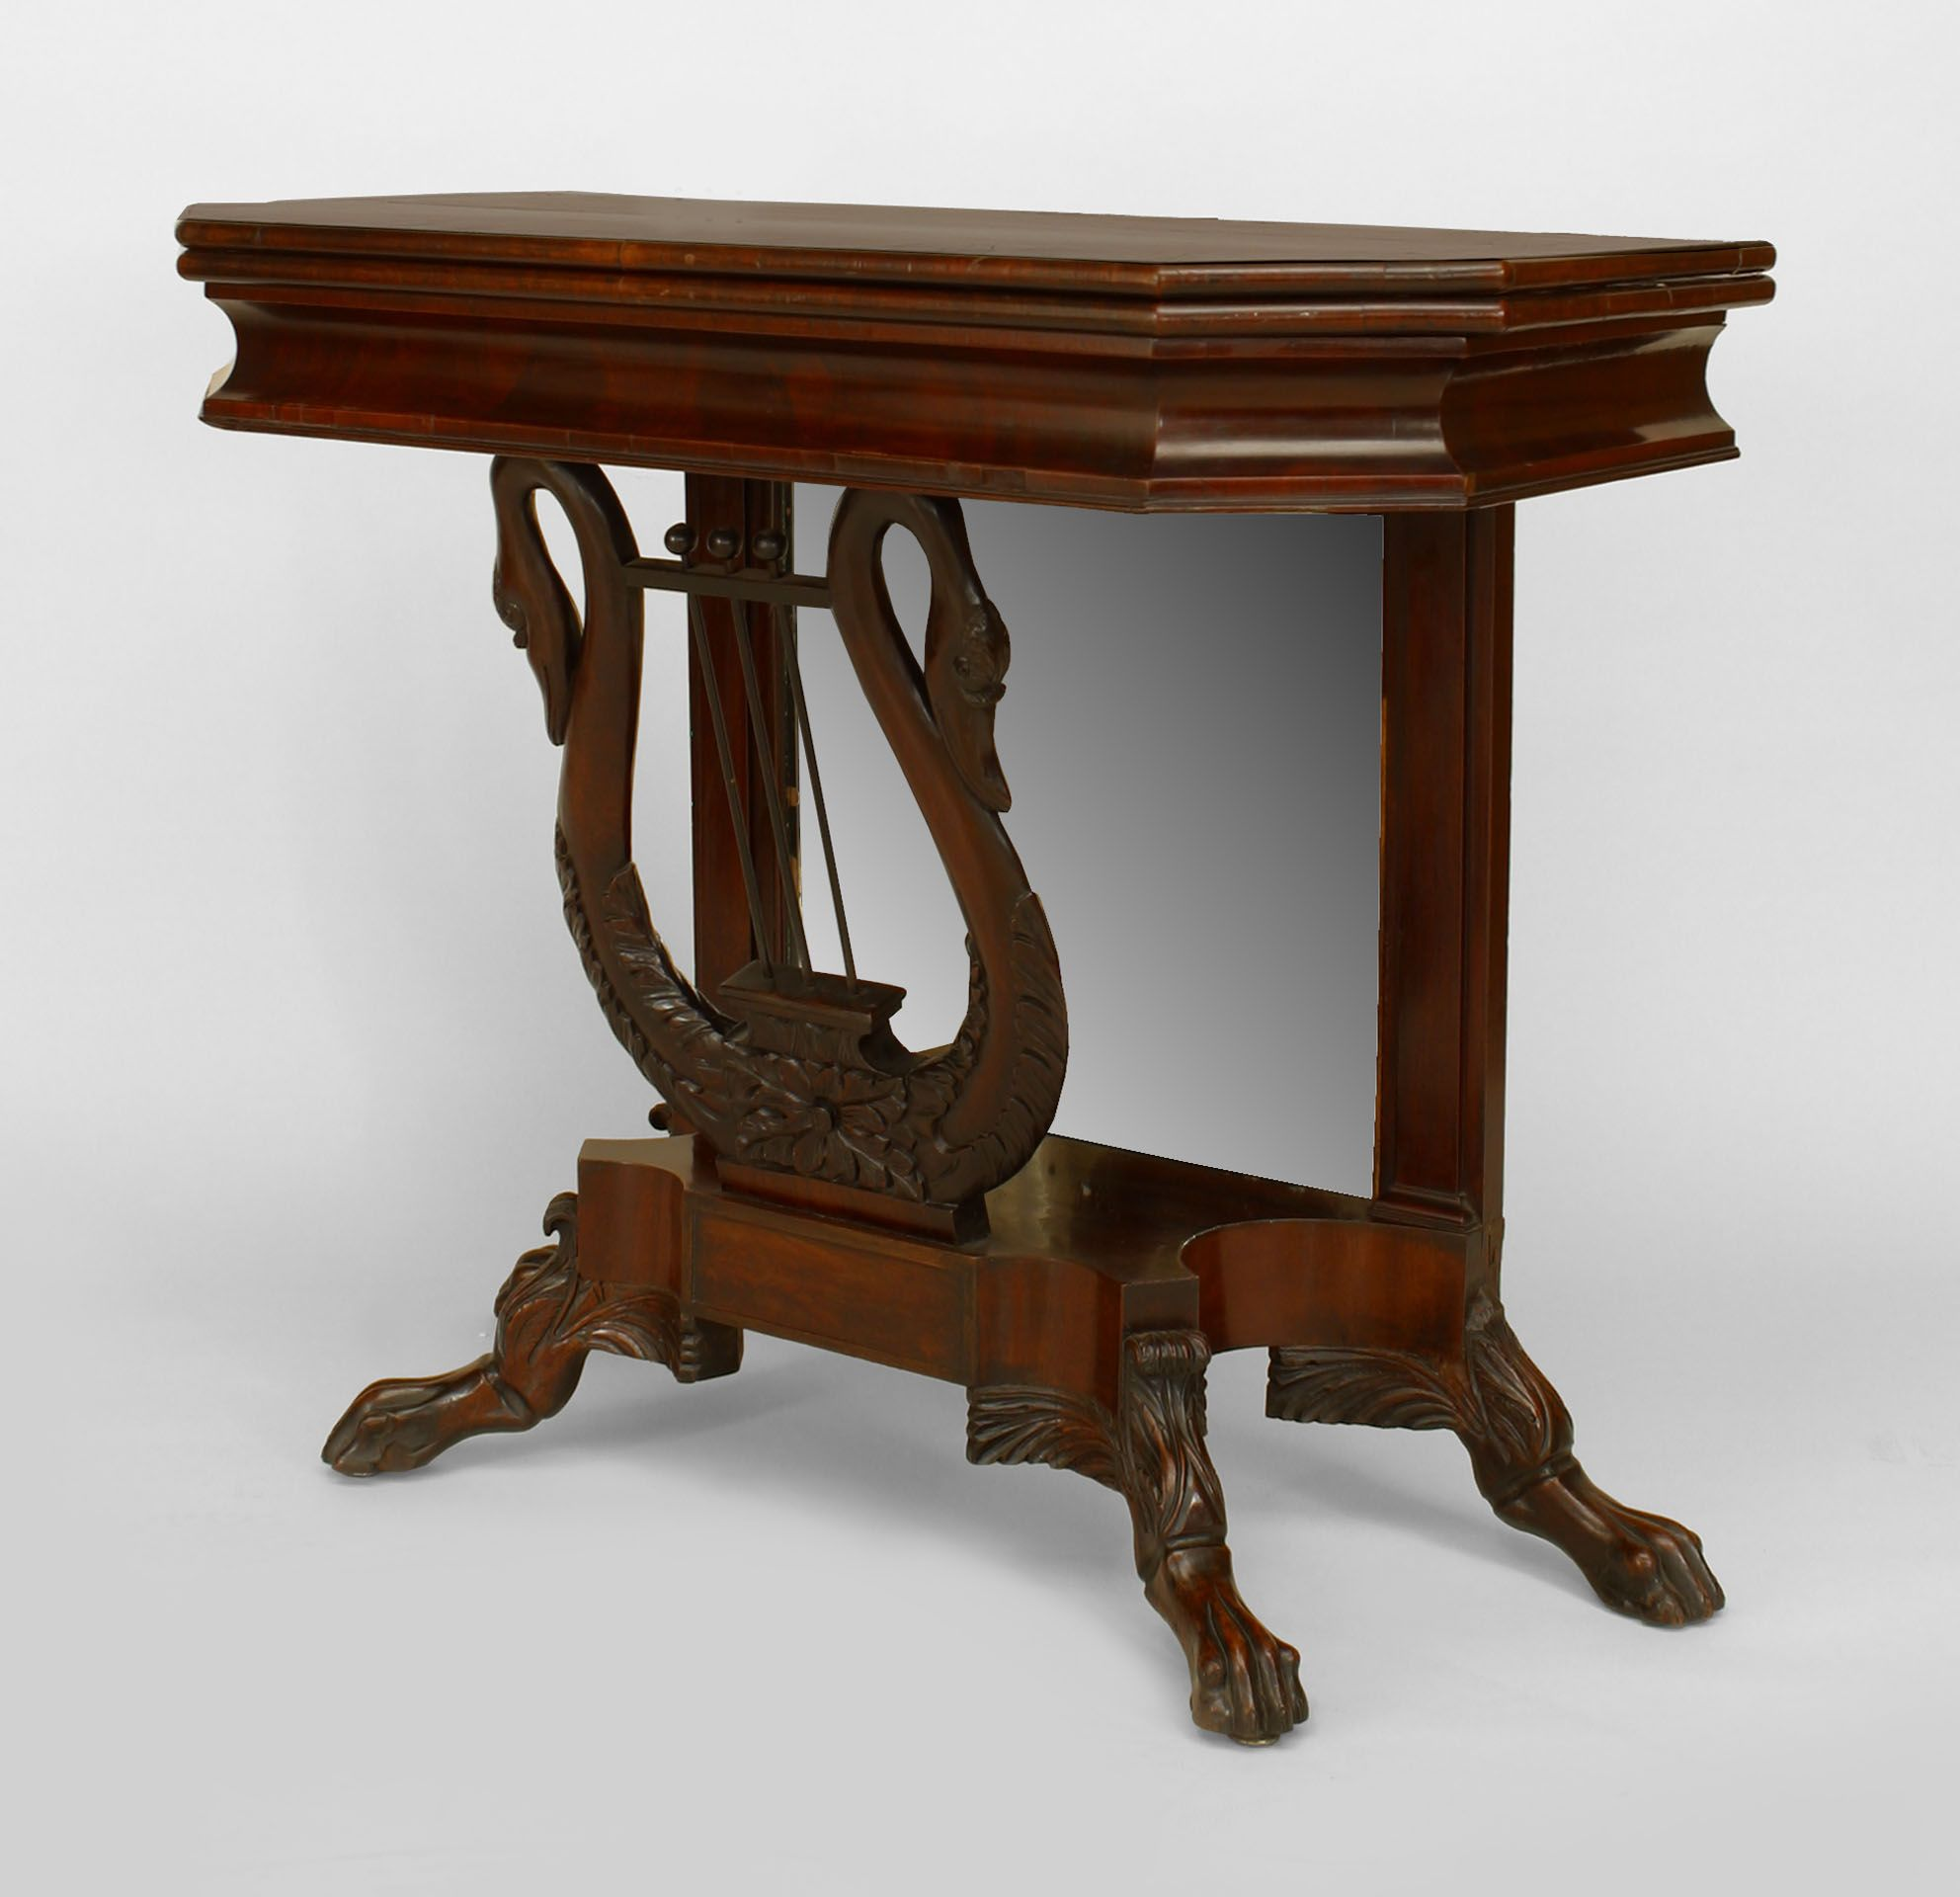 American empire mahogany flip top console table with mirror back american empire mahogany flip top console table with mirror back and lyre and swan base geotapseo Image collections